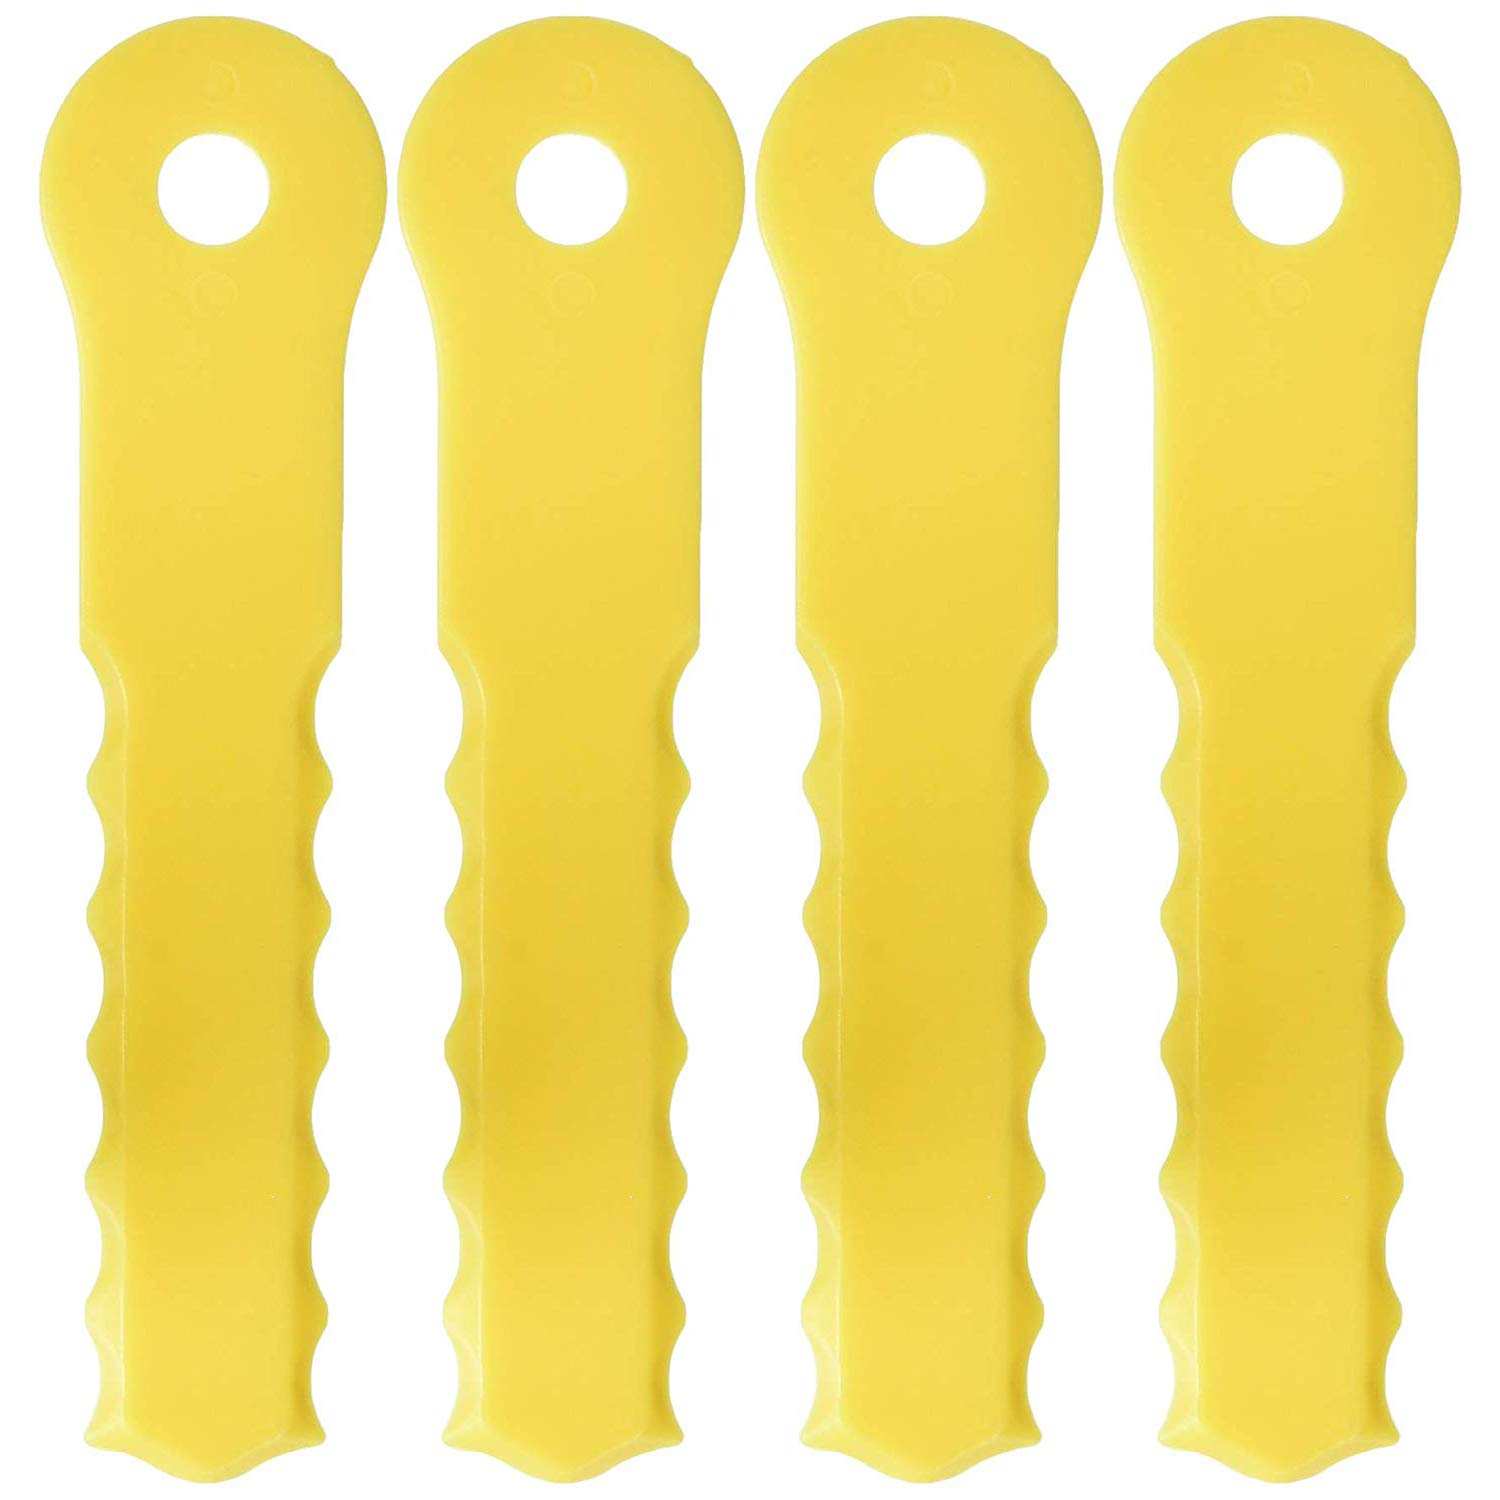 One Size Yellow Weed Warrior 70289A Replacement Push-N-Load 3 Blade Head-70289A Pack of 2